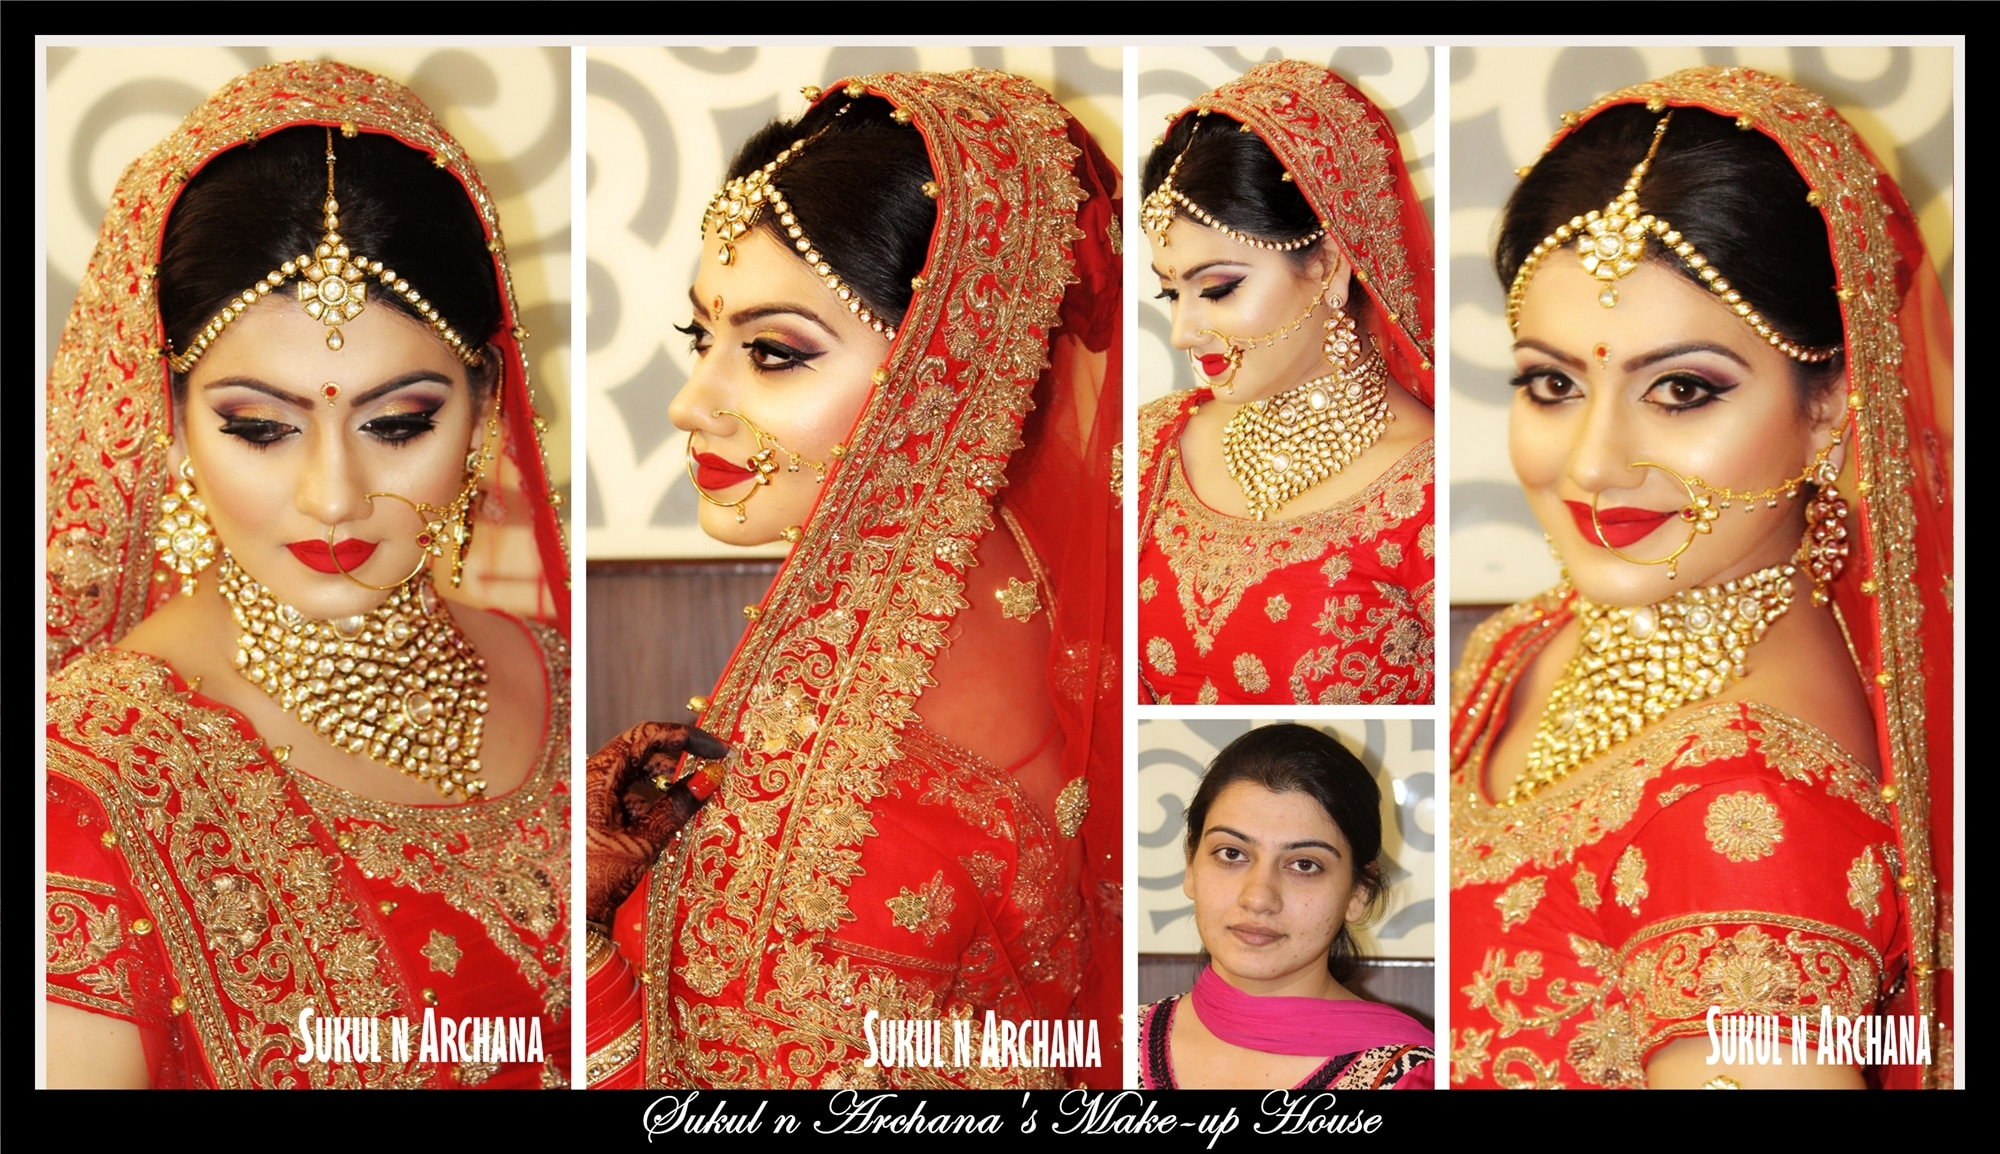 Bridal Makeup artist in South delhi, visit Sukul n Archana's Makeup House and get princess looks on your D day. Visit our website at www.makeuphouse.co.in ...